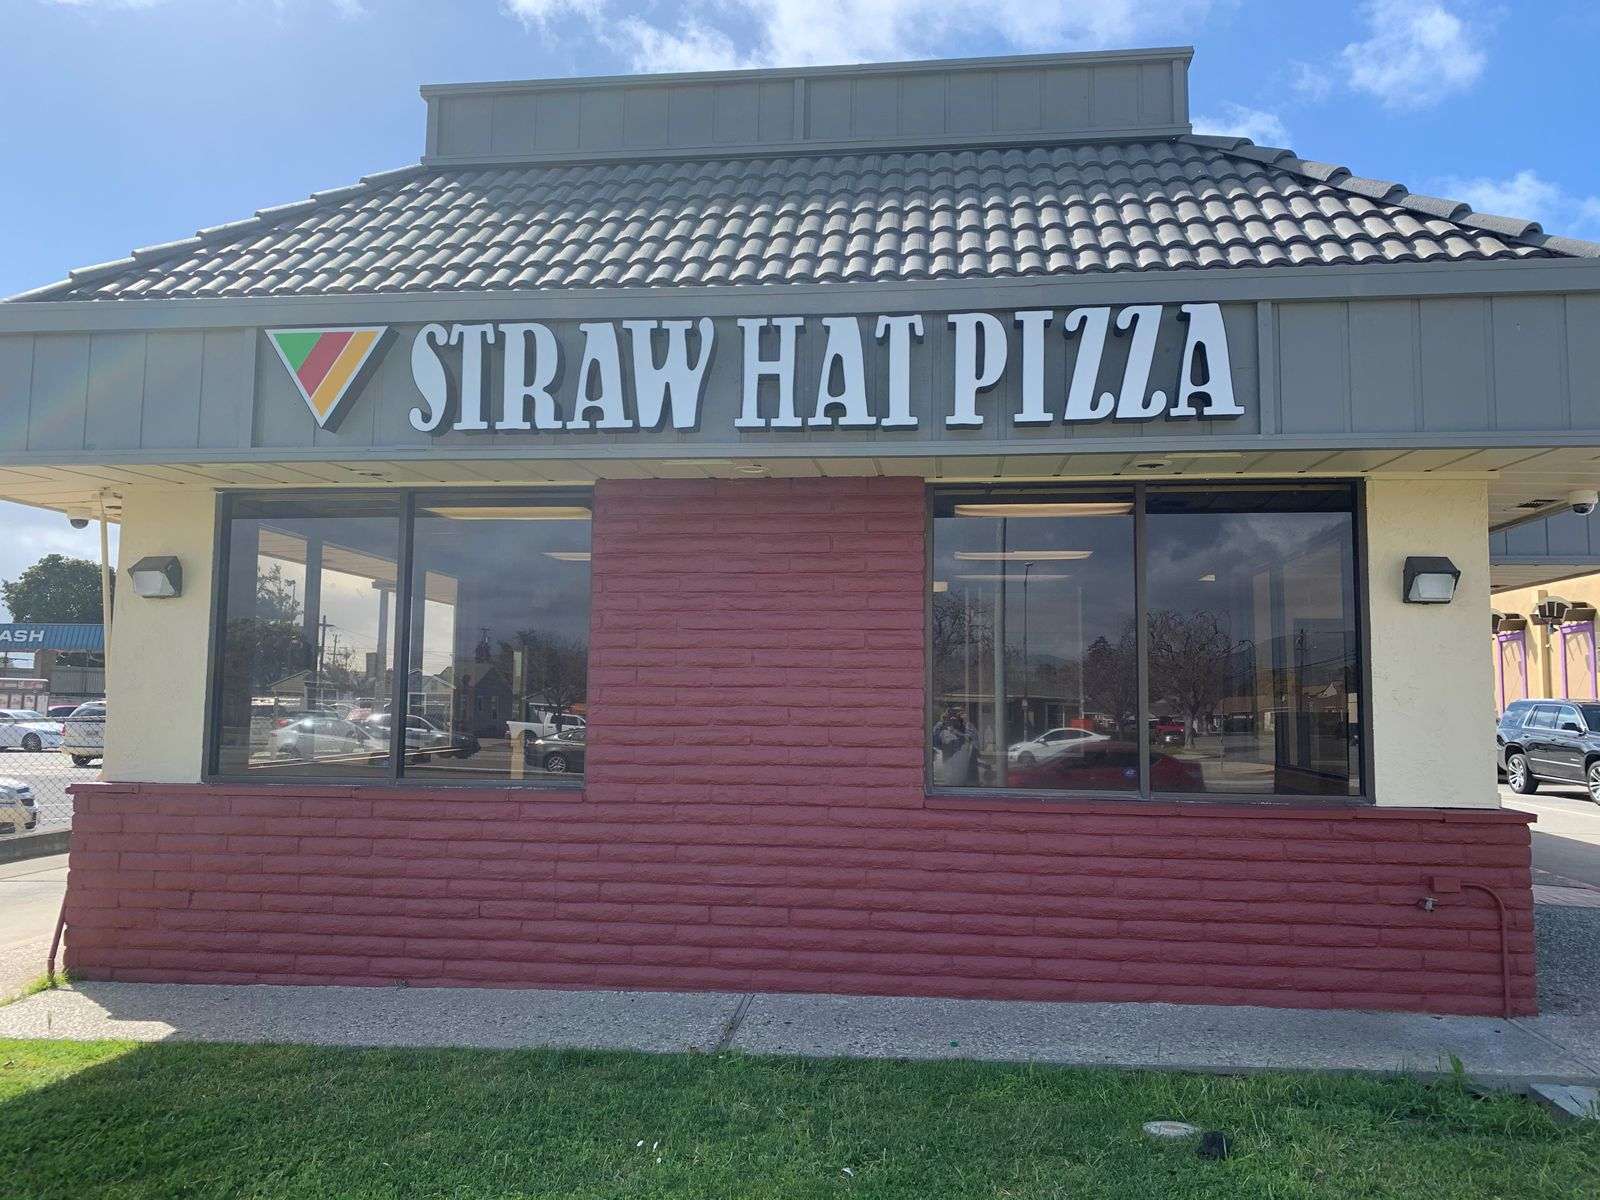 Straw Hat Pizza Opens New Location in Salinas, CA